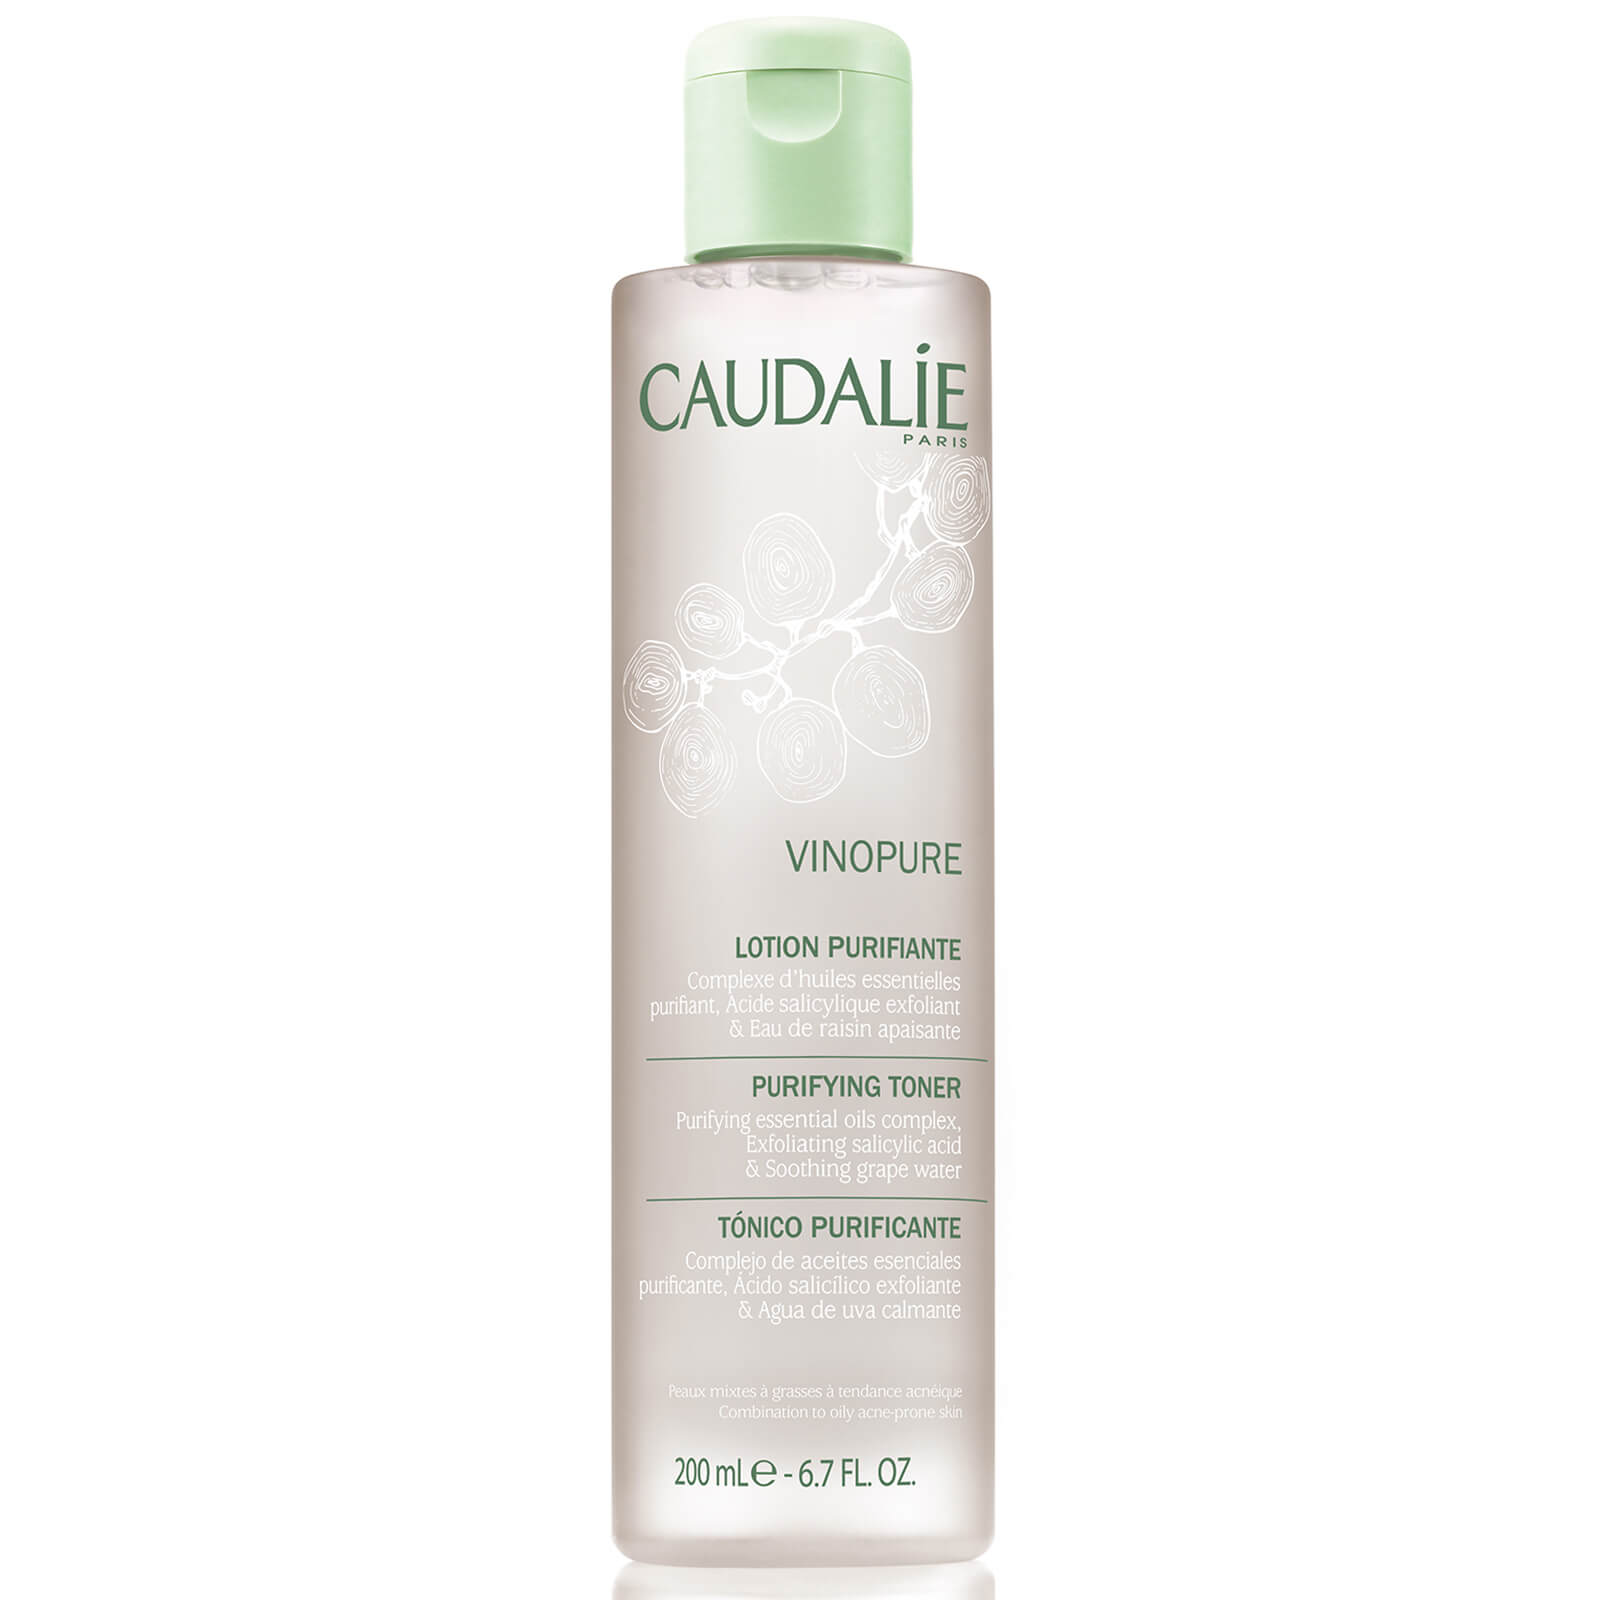 Caudalie - Vinopure Clear Skin Purifying Toner 200 ml